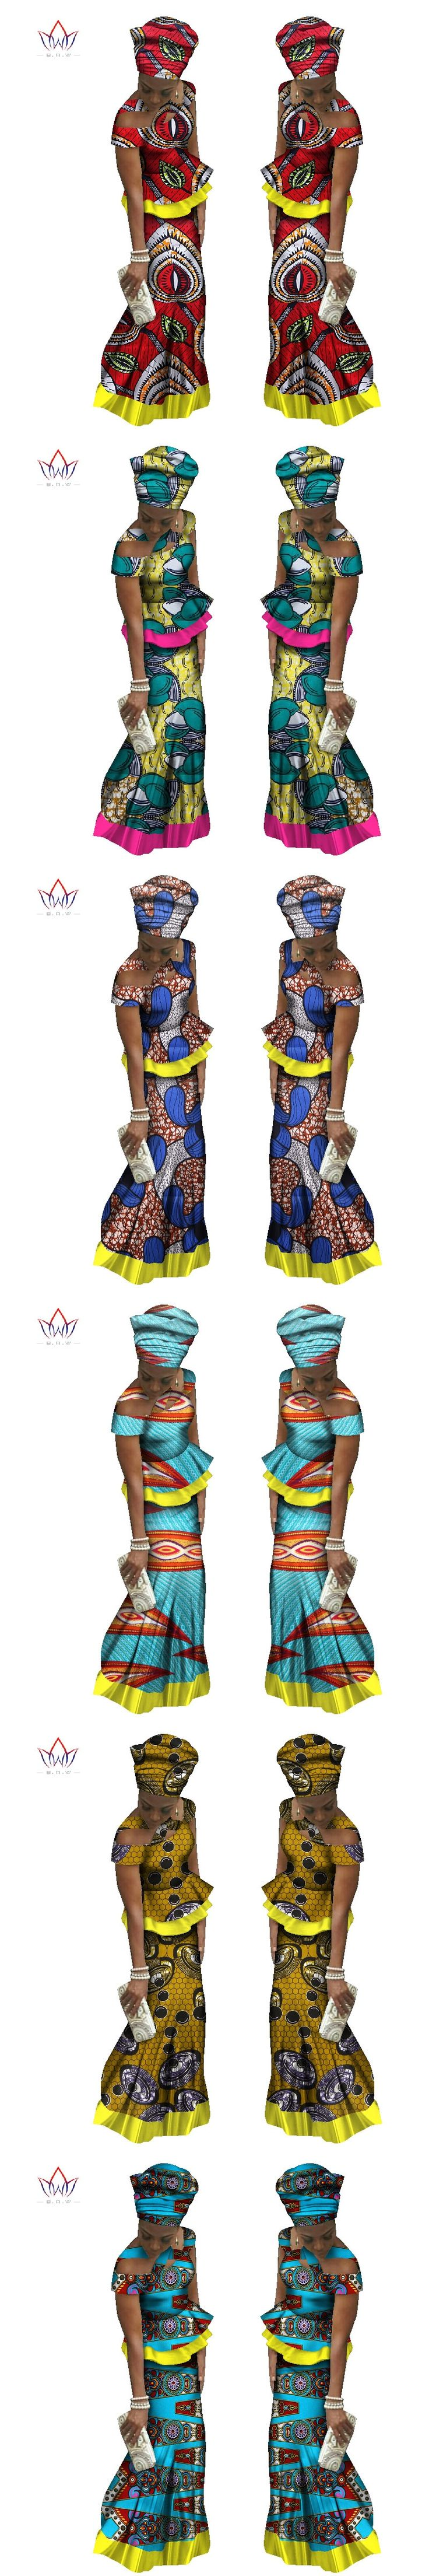 BRW 2017 New Arriving Fashion Africa 2 Pieces Skirt Set Dashiki Long Skirt & Headtie Skirt Traditional African Clothing WY1559